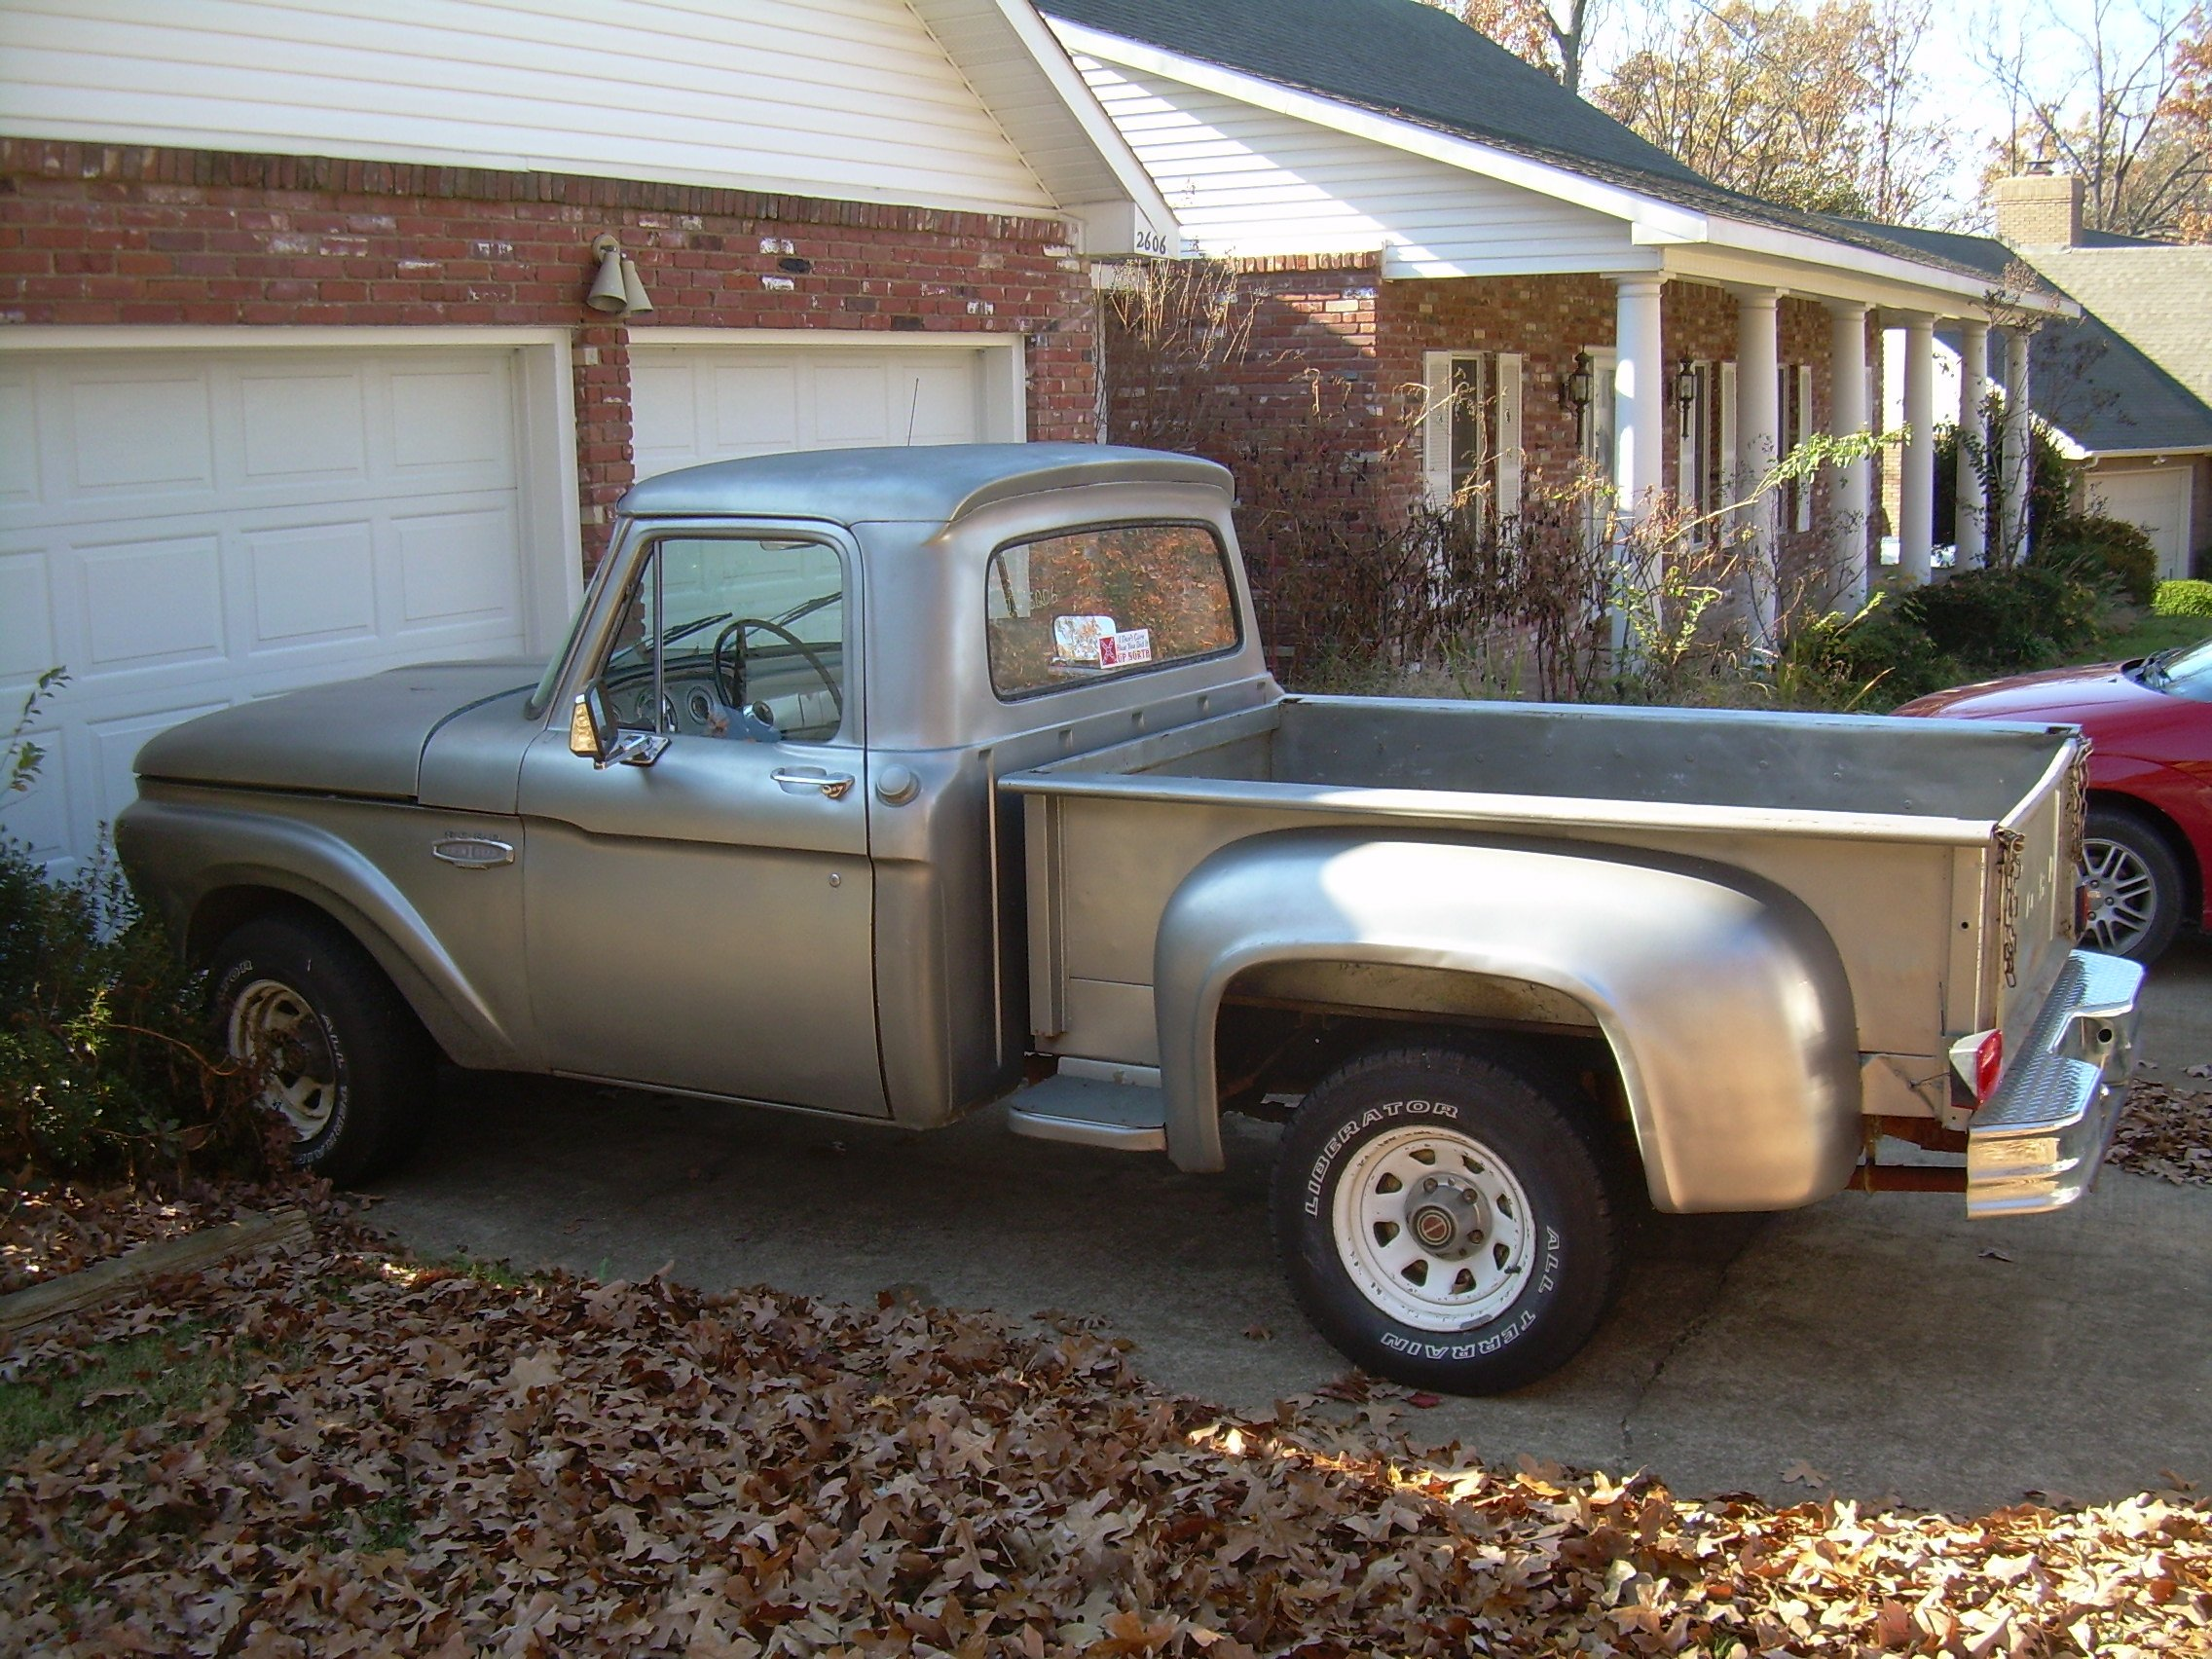 Click here to see a picture of a truck with a real ford step er flareside bed on it fiberglass fenders front rear would not be factory original